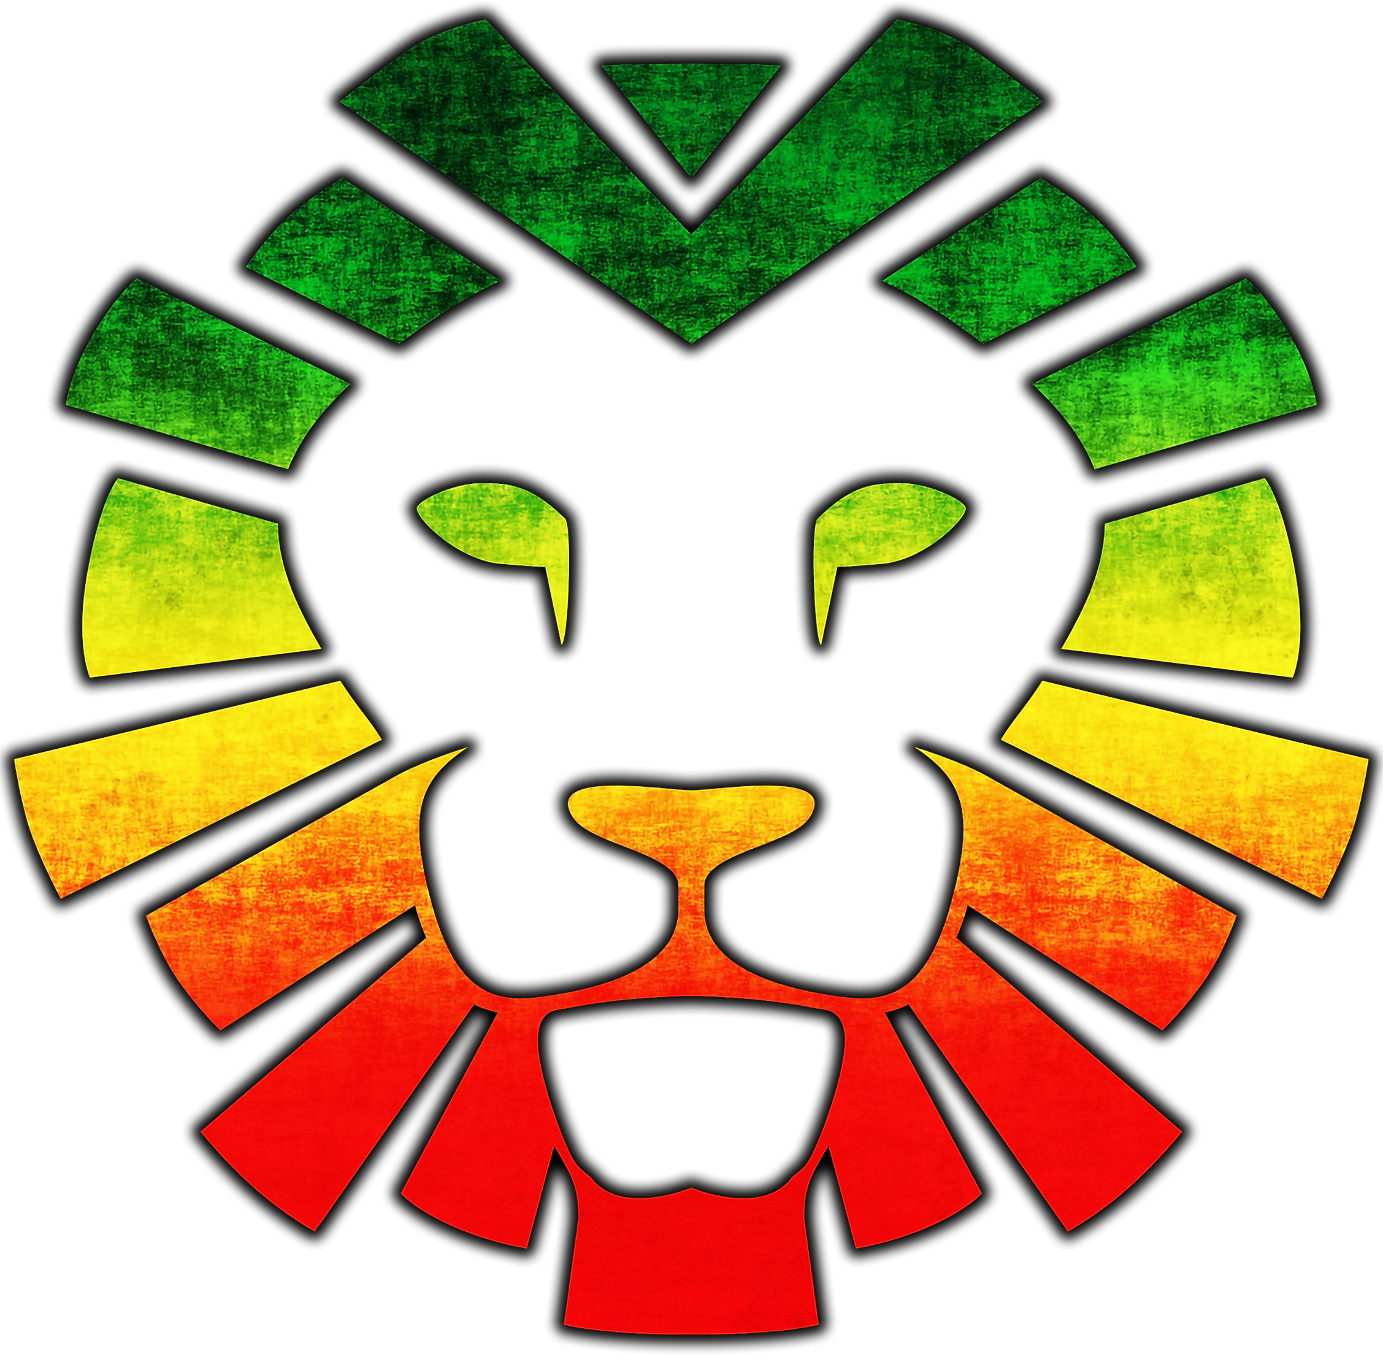 RGG-LION_edited.png